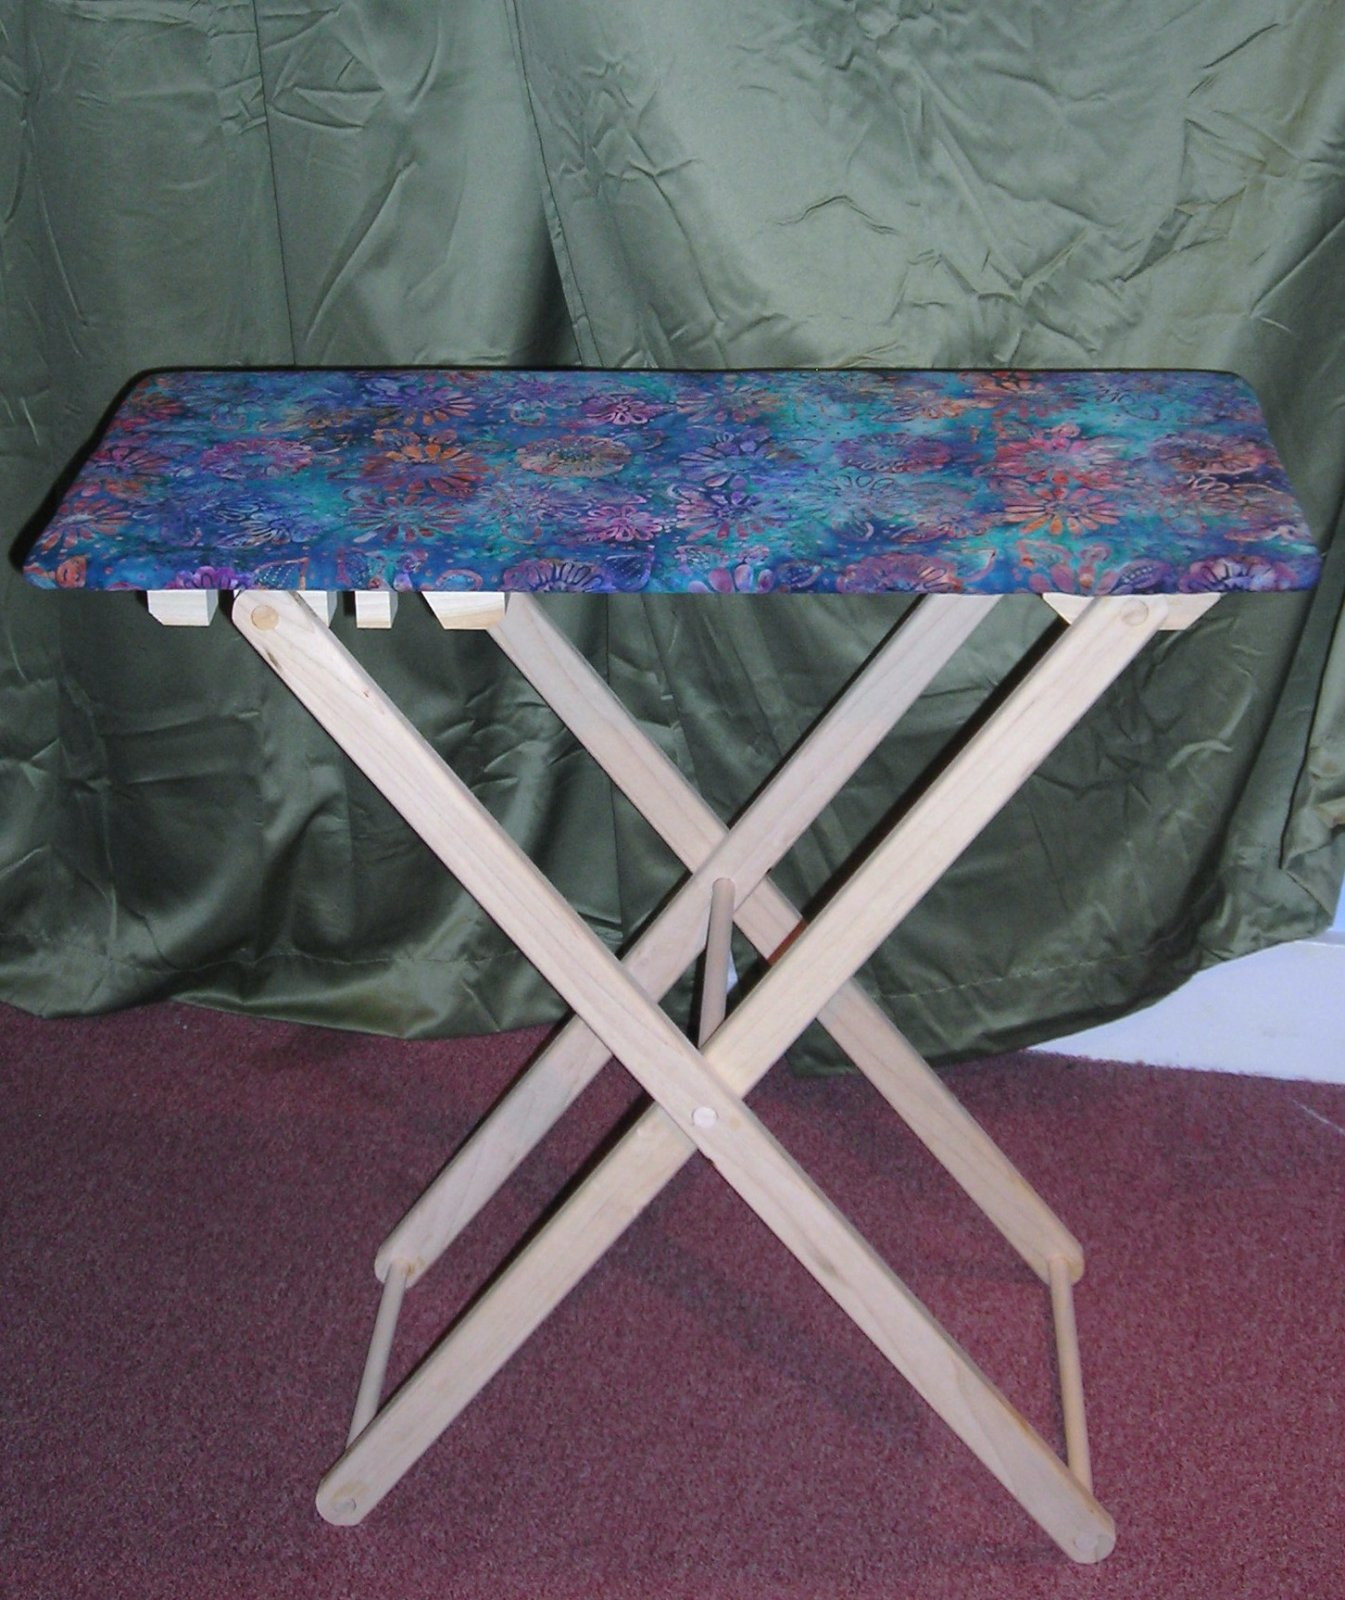 QUILTER'S DREAM FOLDING TABLE TRAVEL SIZE (14 x 29) IRONING BOARD